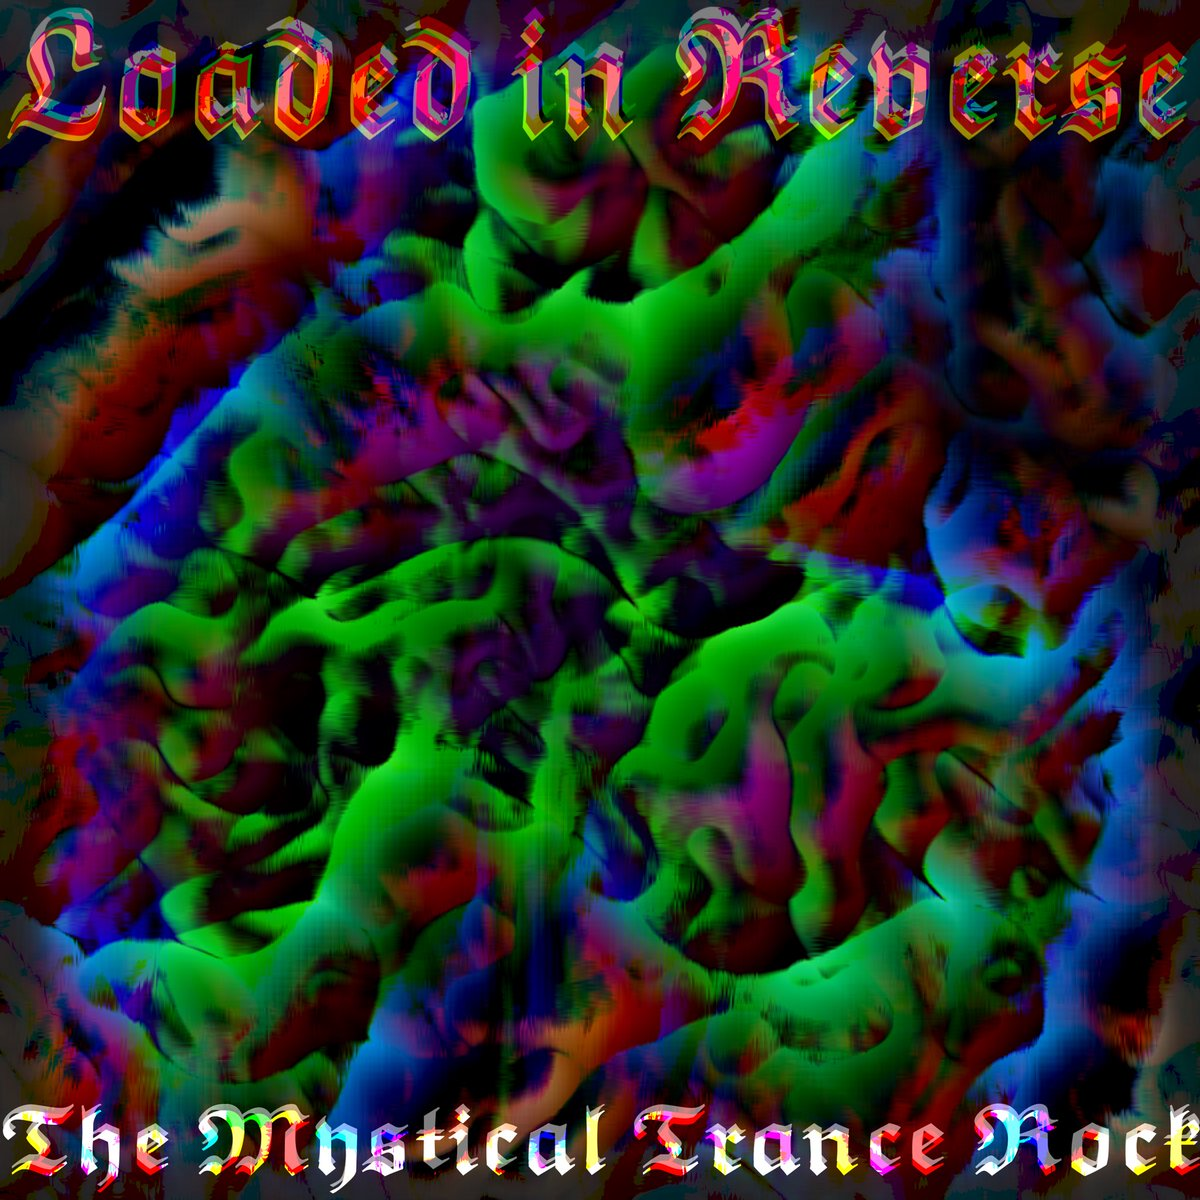 next album cover preview, will release it in 3 months, time to get audio equipment working again so I can make NEW music #albumart #loadedinreverse #mystical #trance #rock #metal #hiphop #dubstep #trippy #trippyart #psychedelic #psy #colorful #design #digitalart #digitalartistpic.twitter.com/AHIY3hYAHe